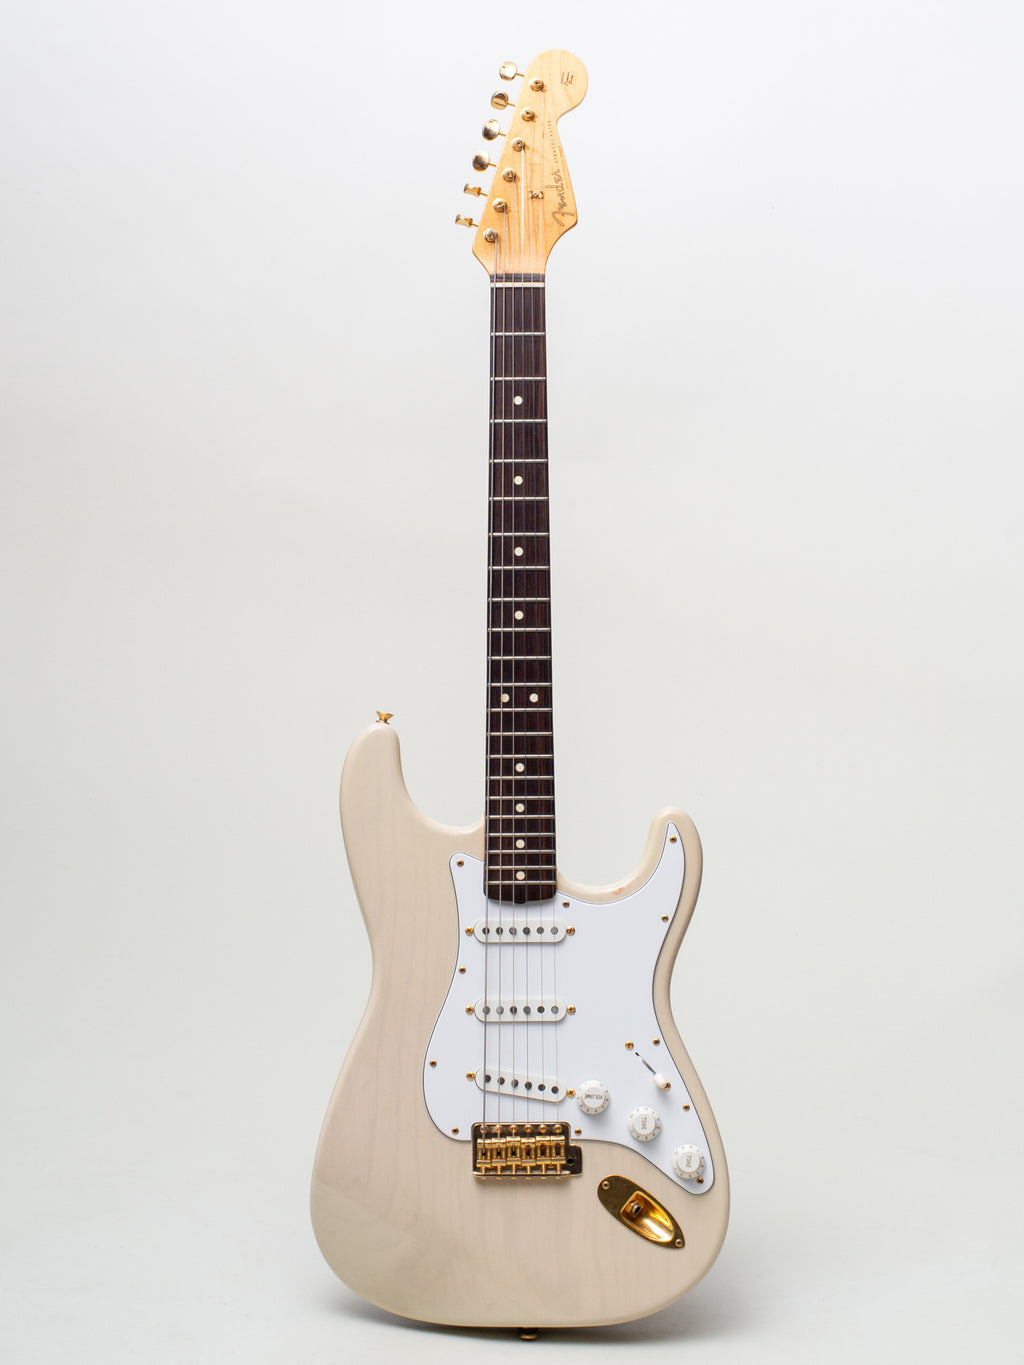 1990 Fender Stratocaster 1957 Mary Kaye RI Stage used and signed by SRV